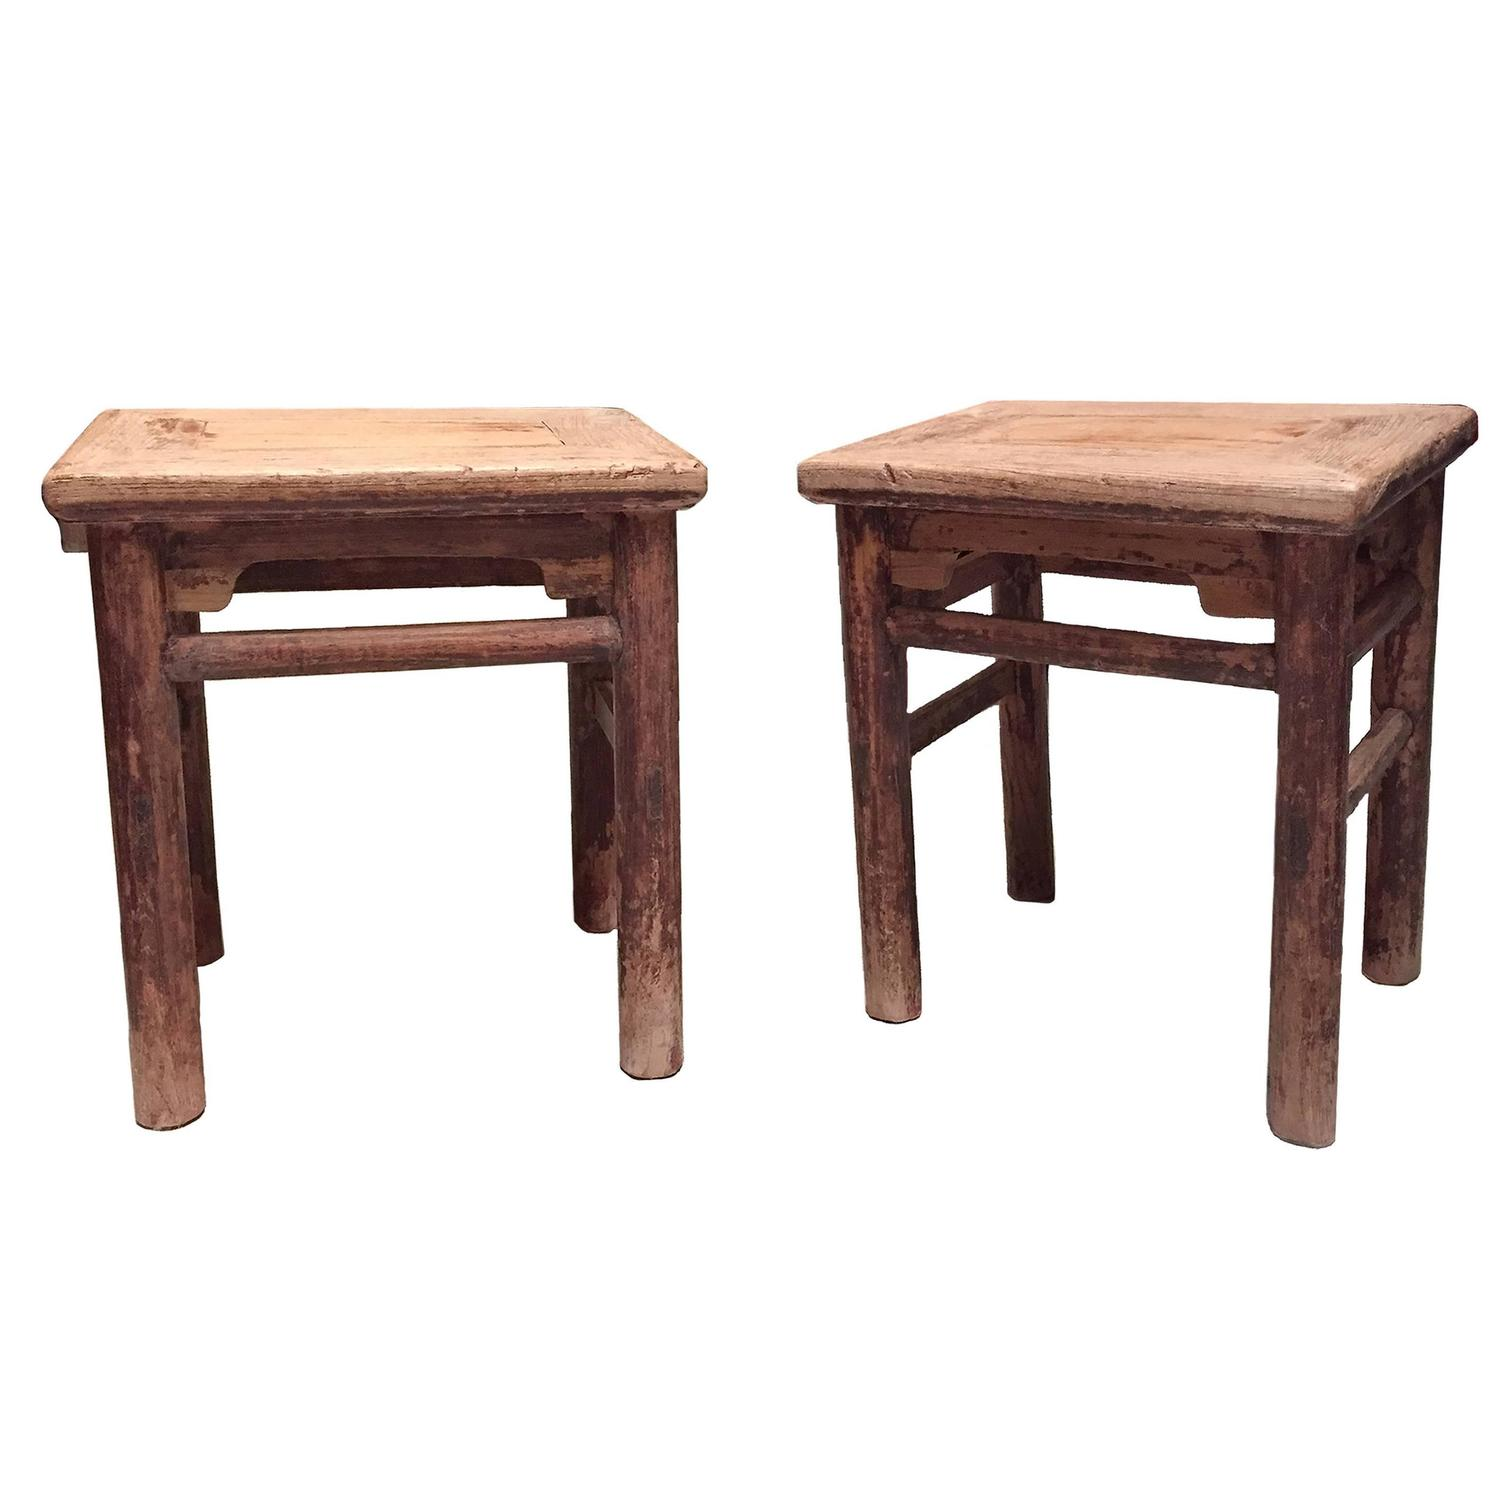 Pair of antique chinese ming style stools 19th century for Antique chinese furniture styles